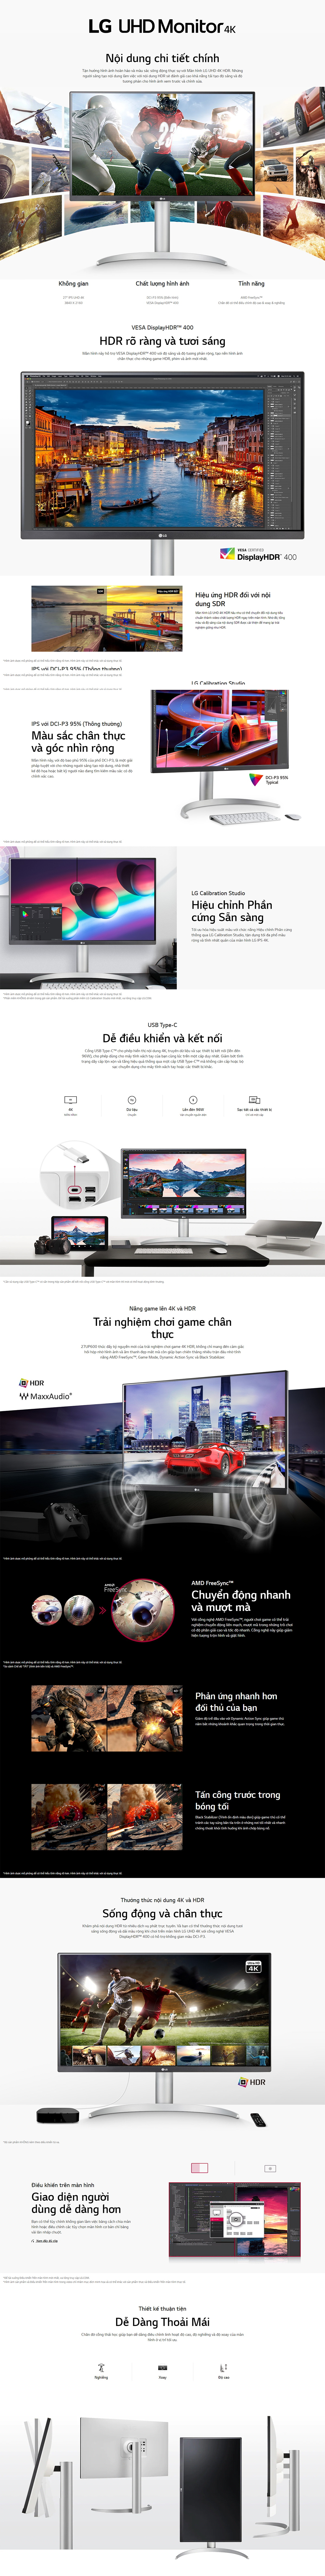 LG 27UP850 W Monitor Details